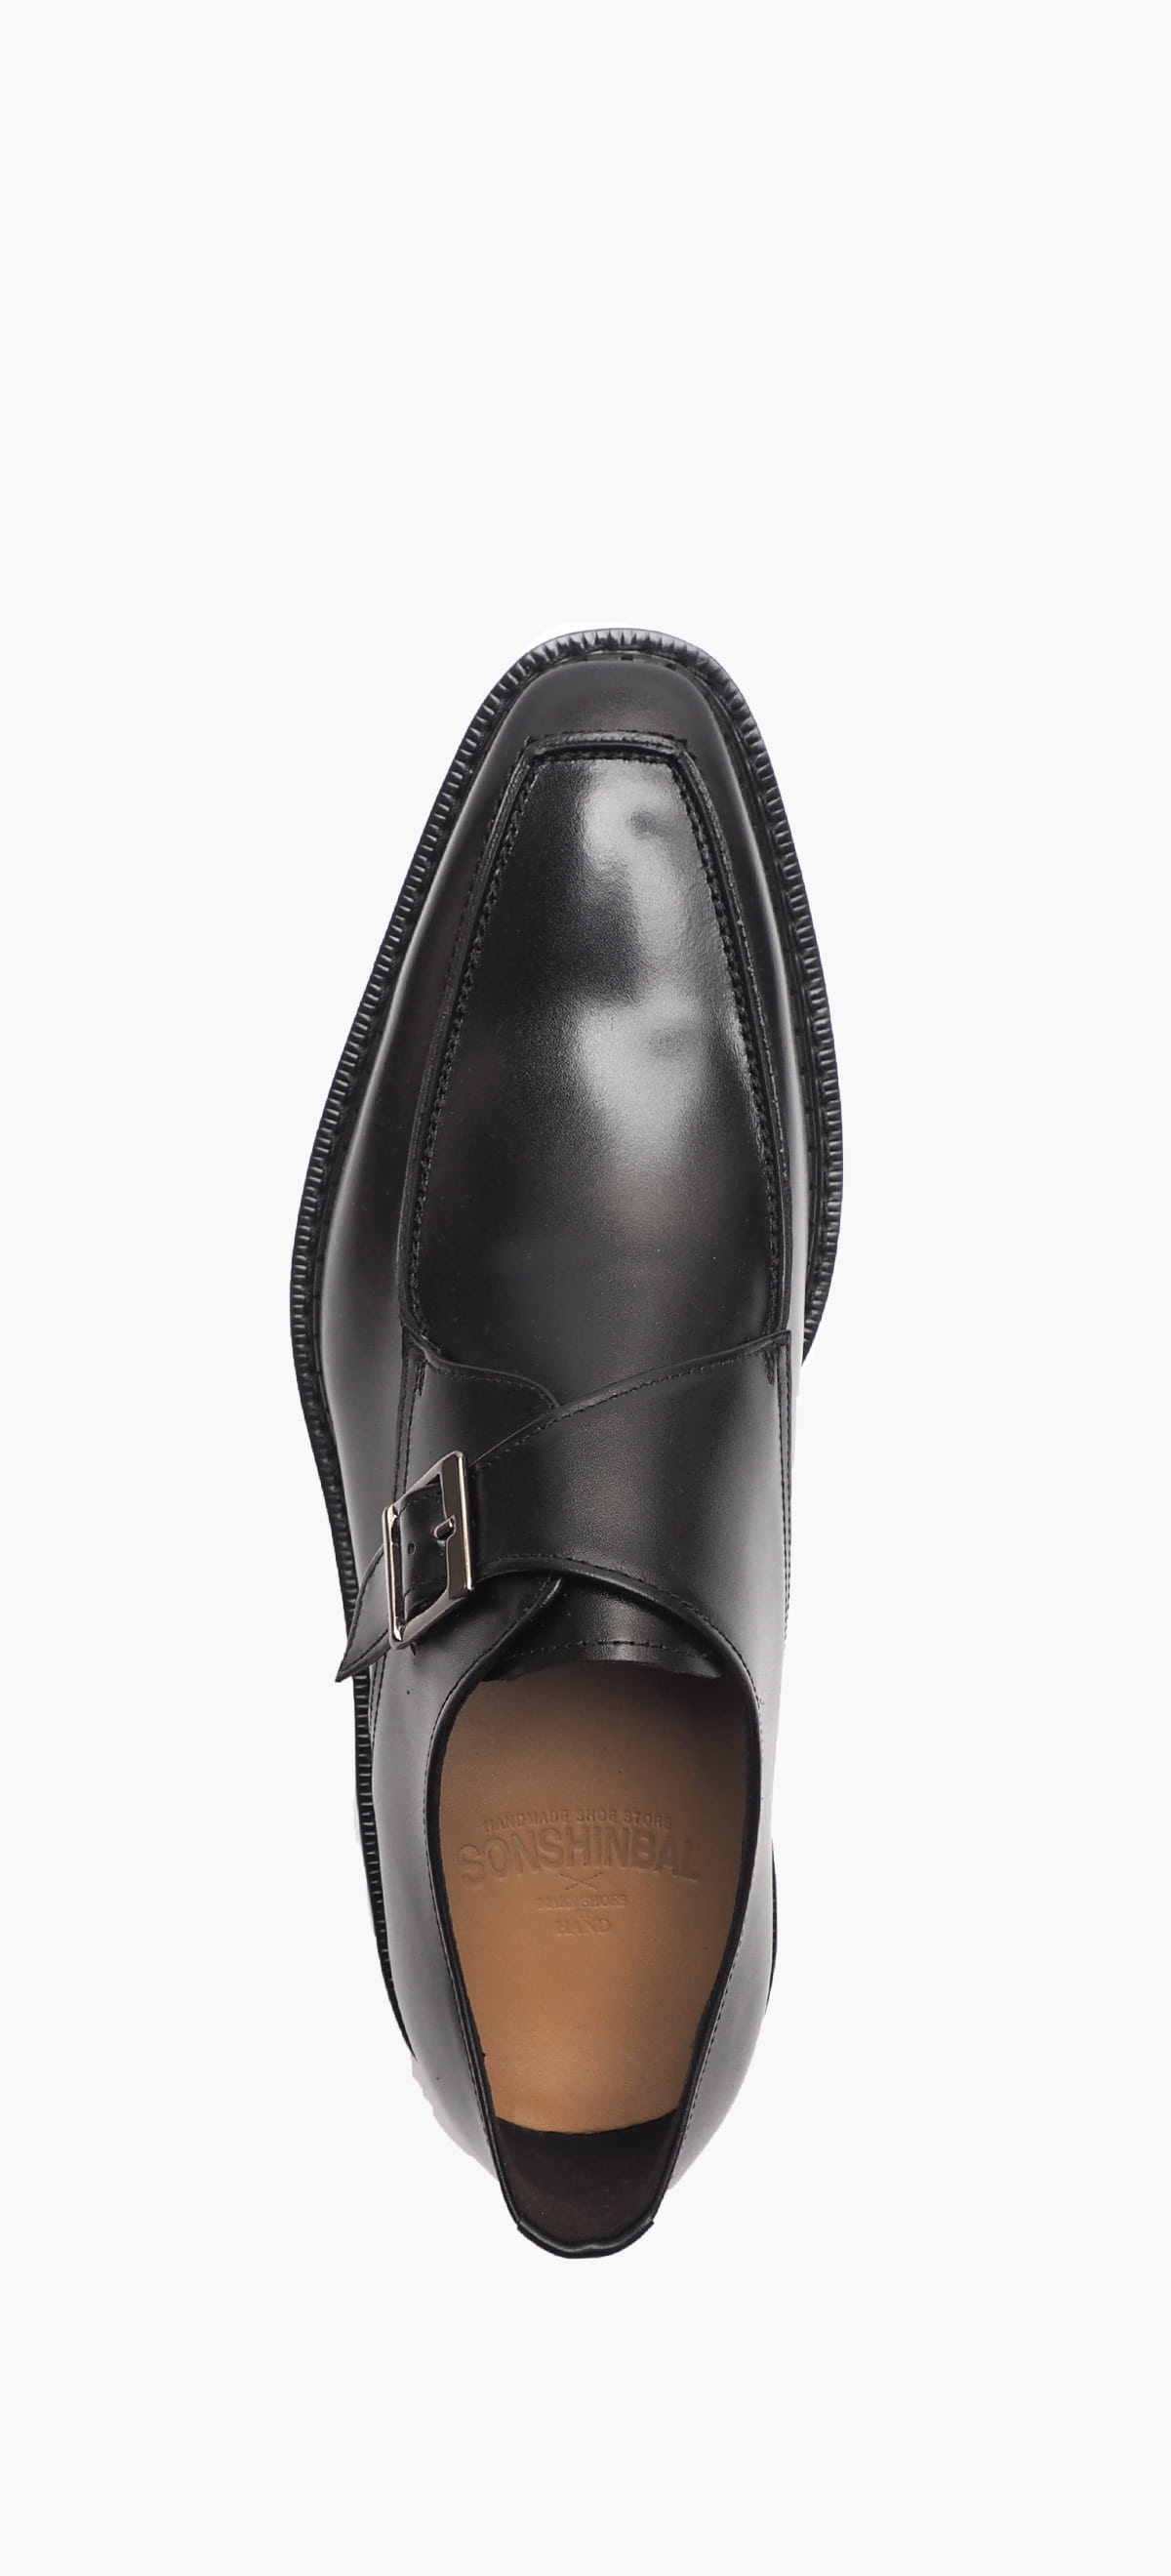 Monk Strap 4015-02 Black Kip